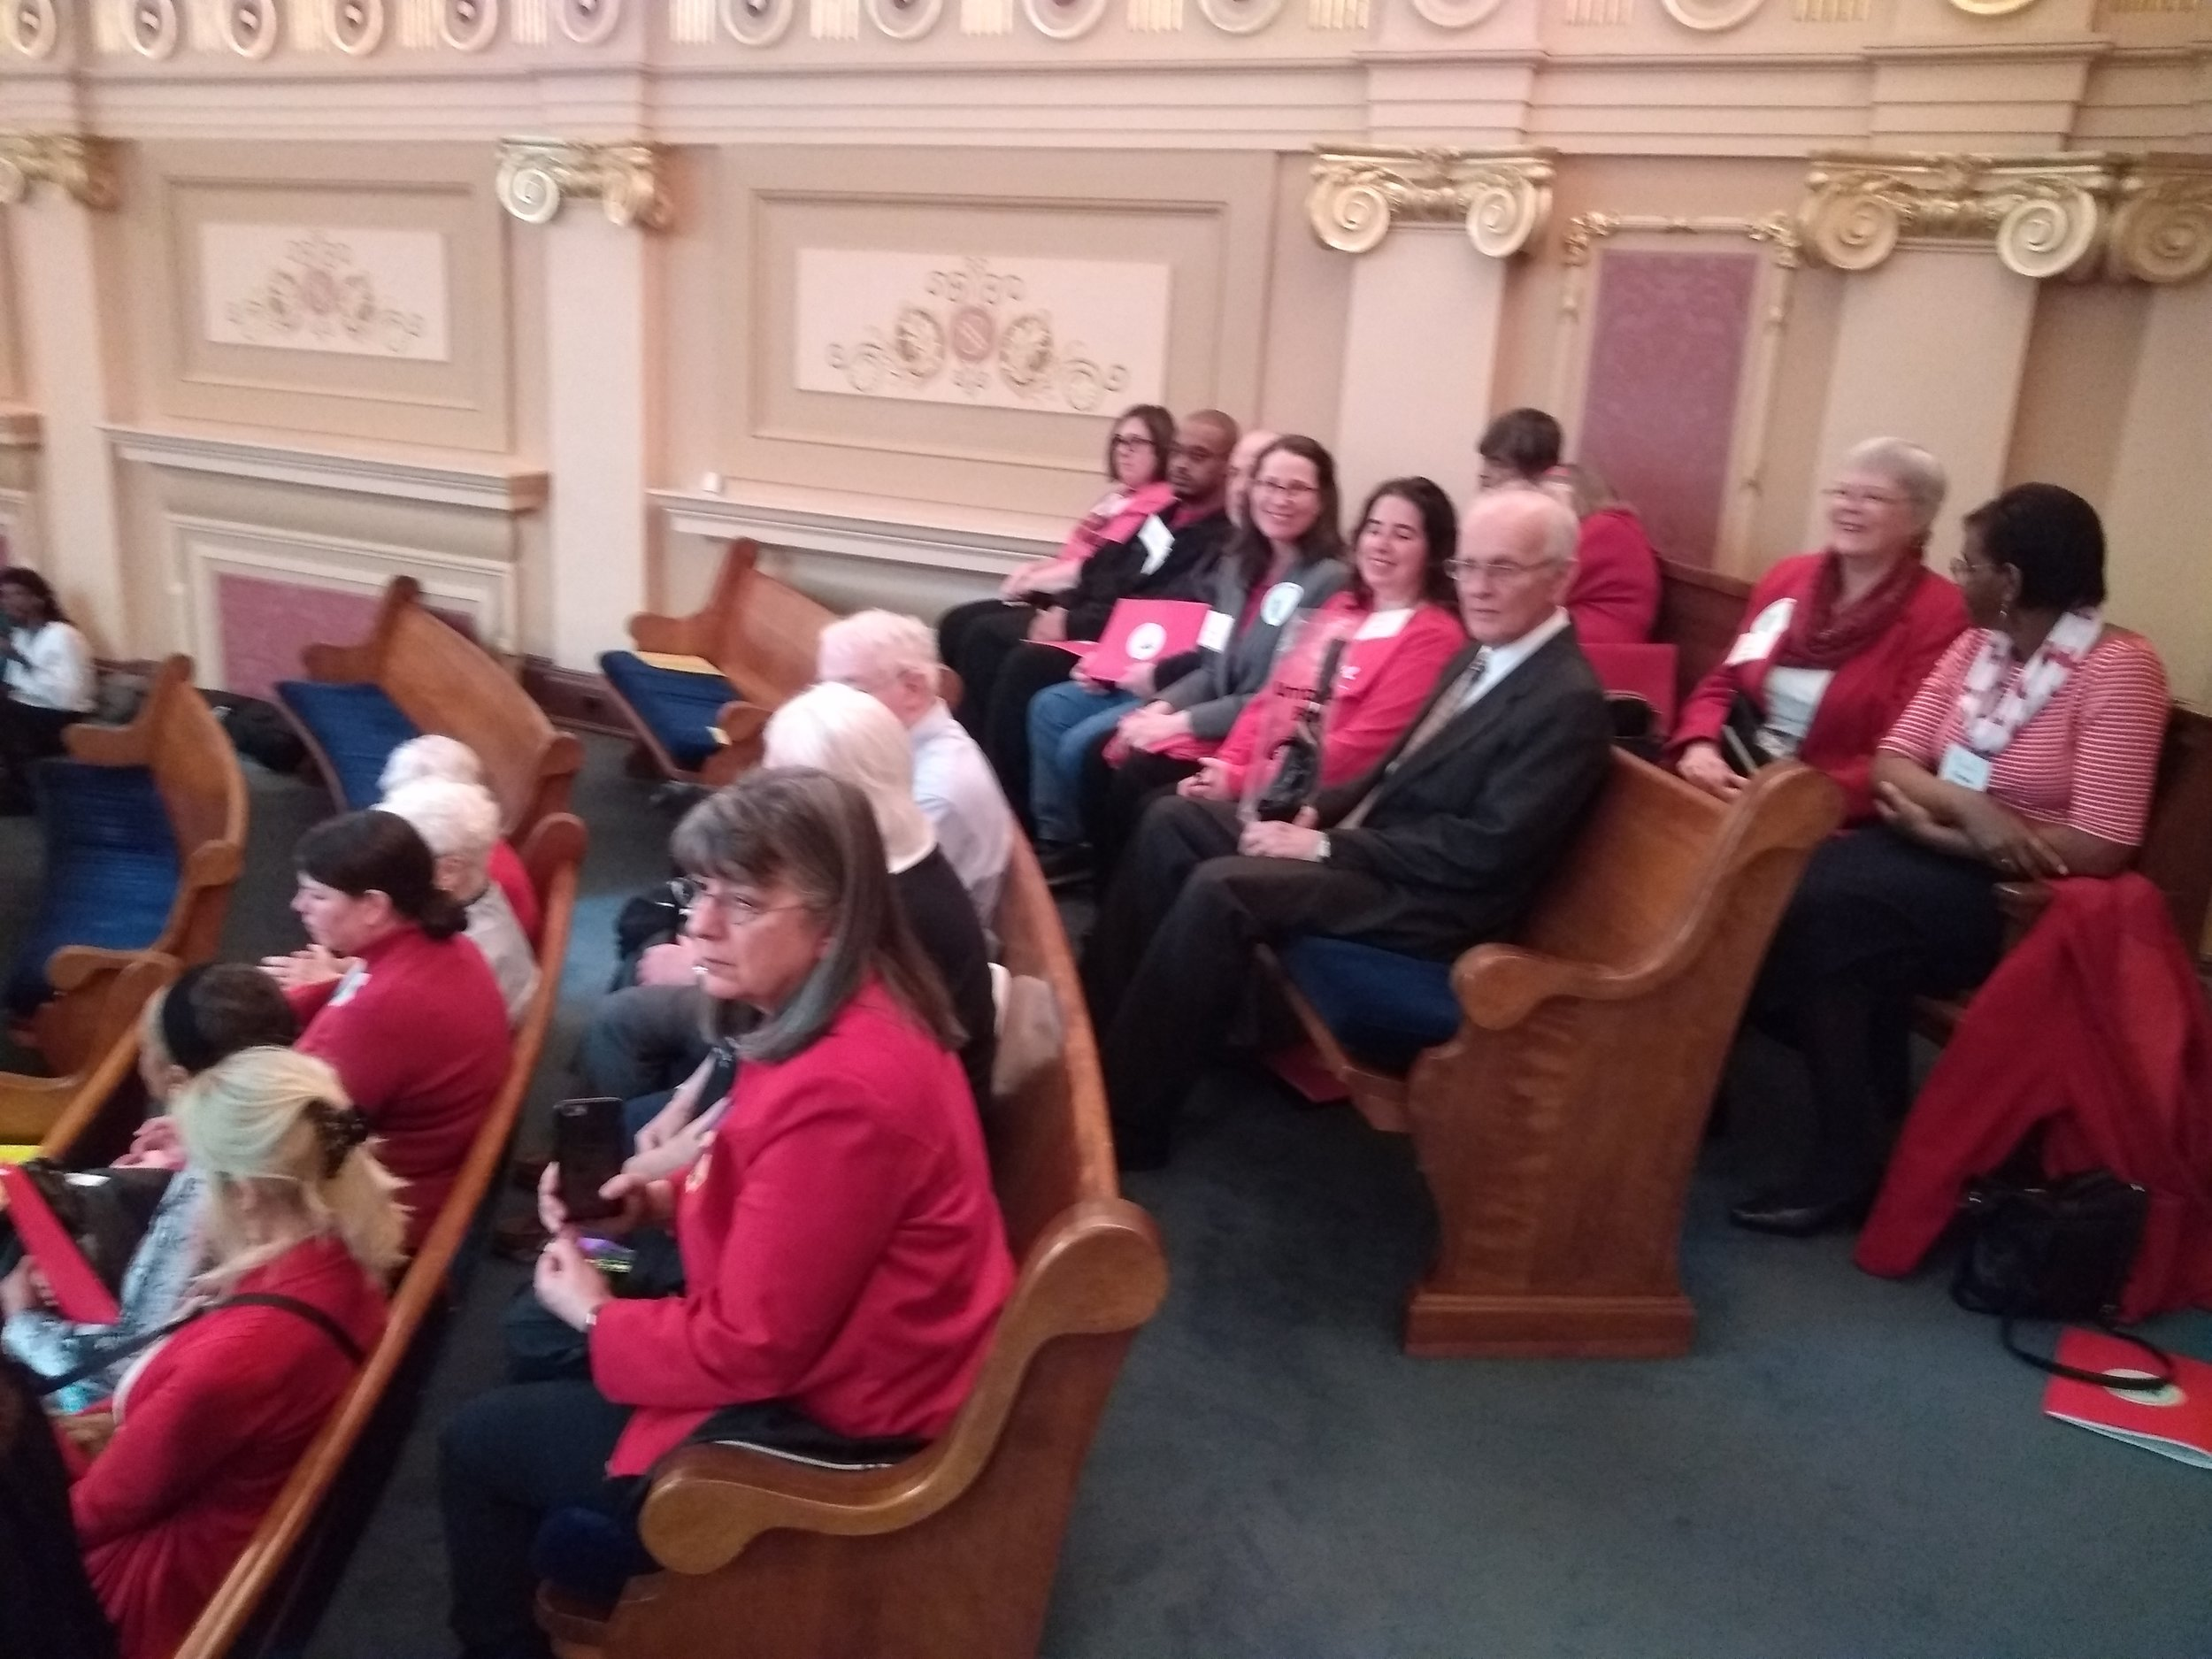 Some of our Supporters gathered in the Gallery to encourage those who voted against the ERA.